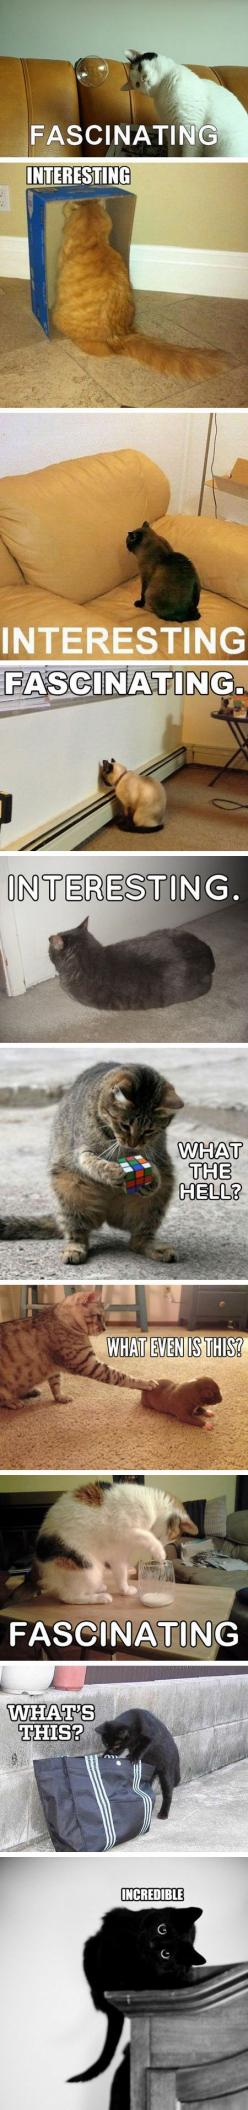 AWW: Funny Animals, Kitty Cats, Kitten, Funny Cats, Curious Cats, Crazy Cat, Easily Amazed, Cat Lady